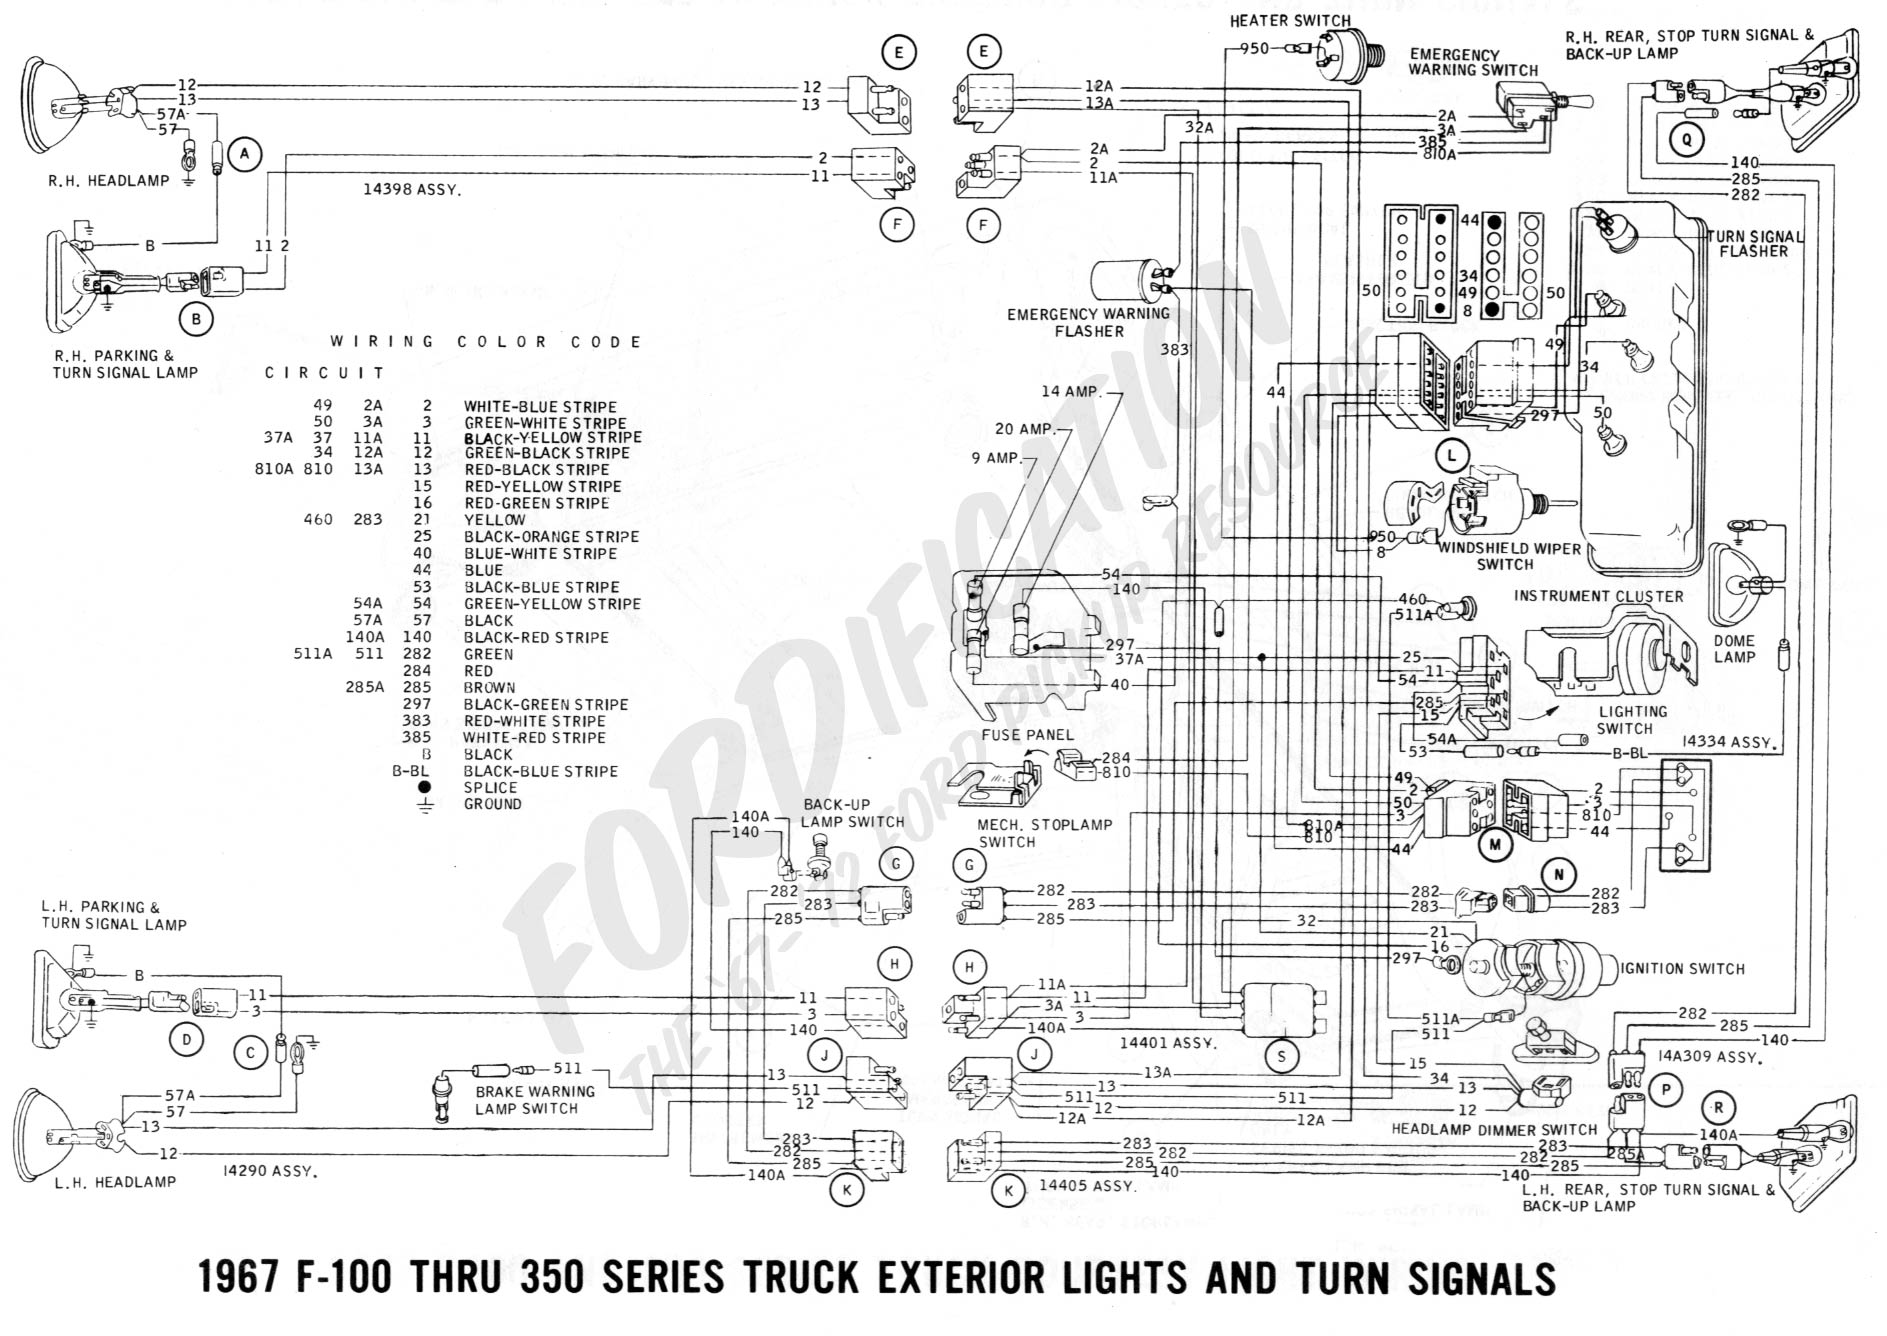 hight resolution of 79 ford alternator wiring diagram free picture wiring diagram hub 12 volt tractor alternator wiring diagram 1965 ford alternator wiring diagram